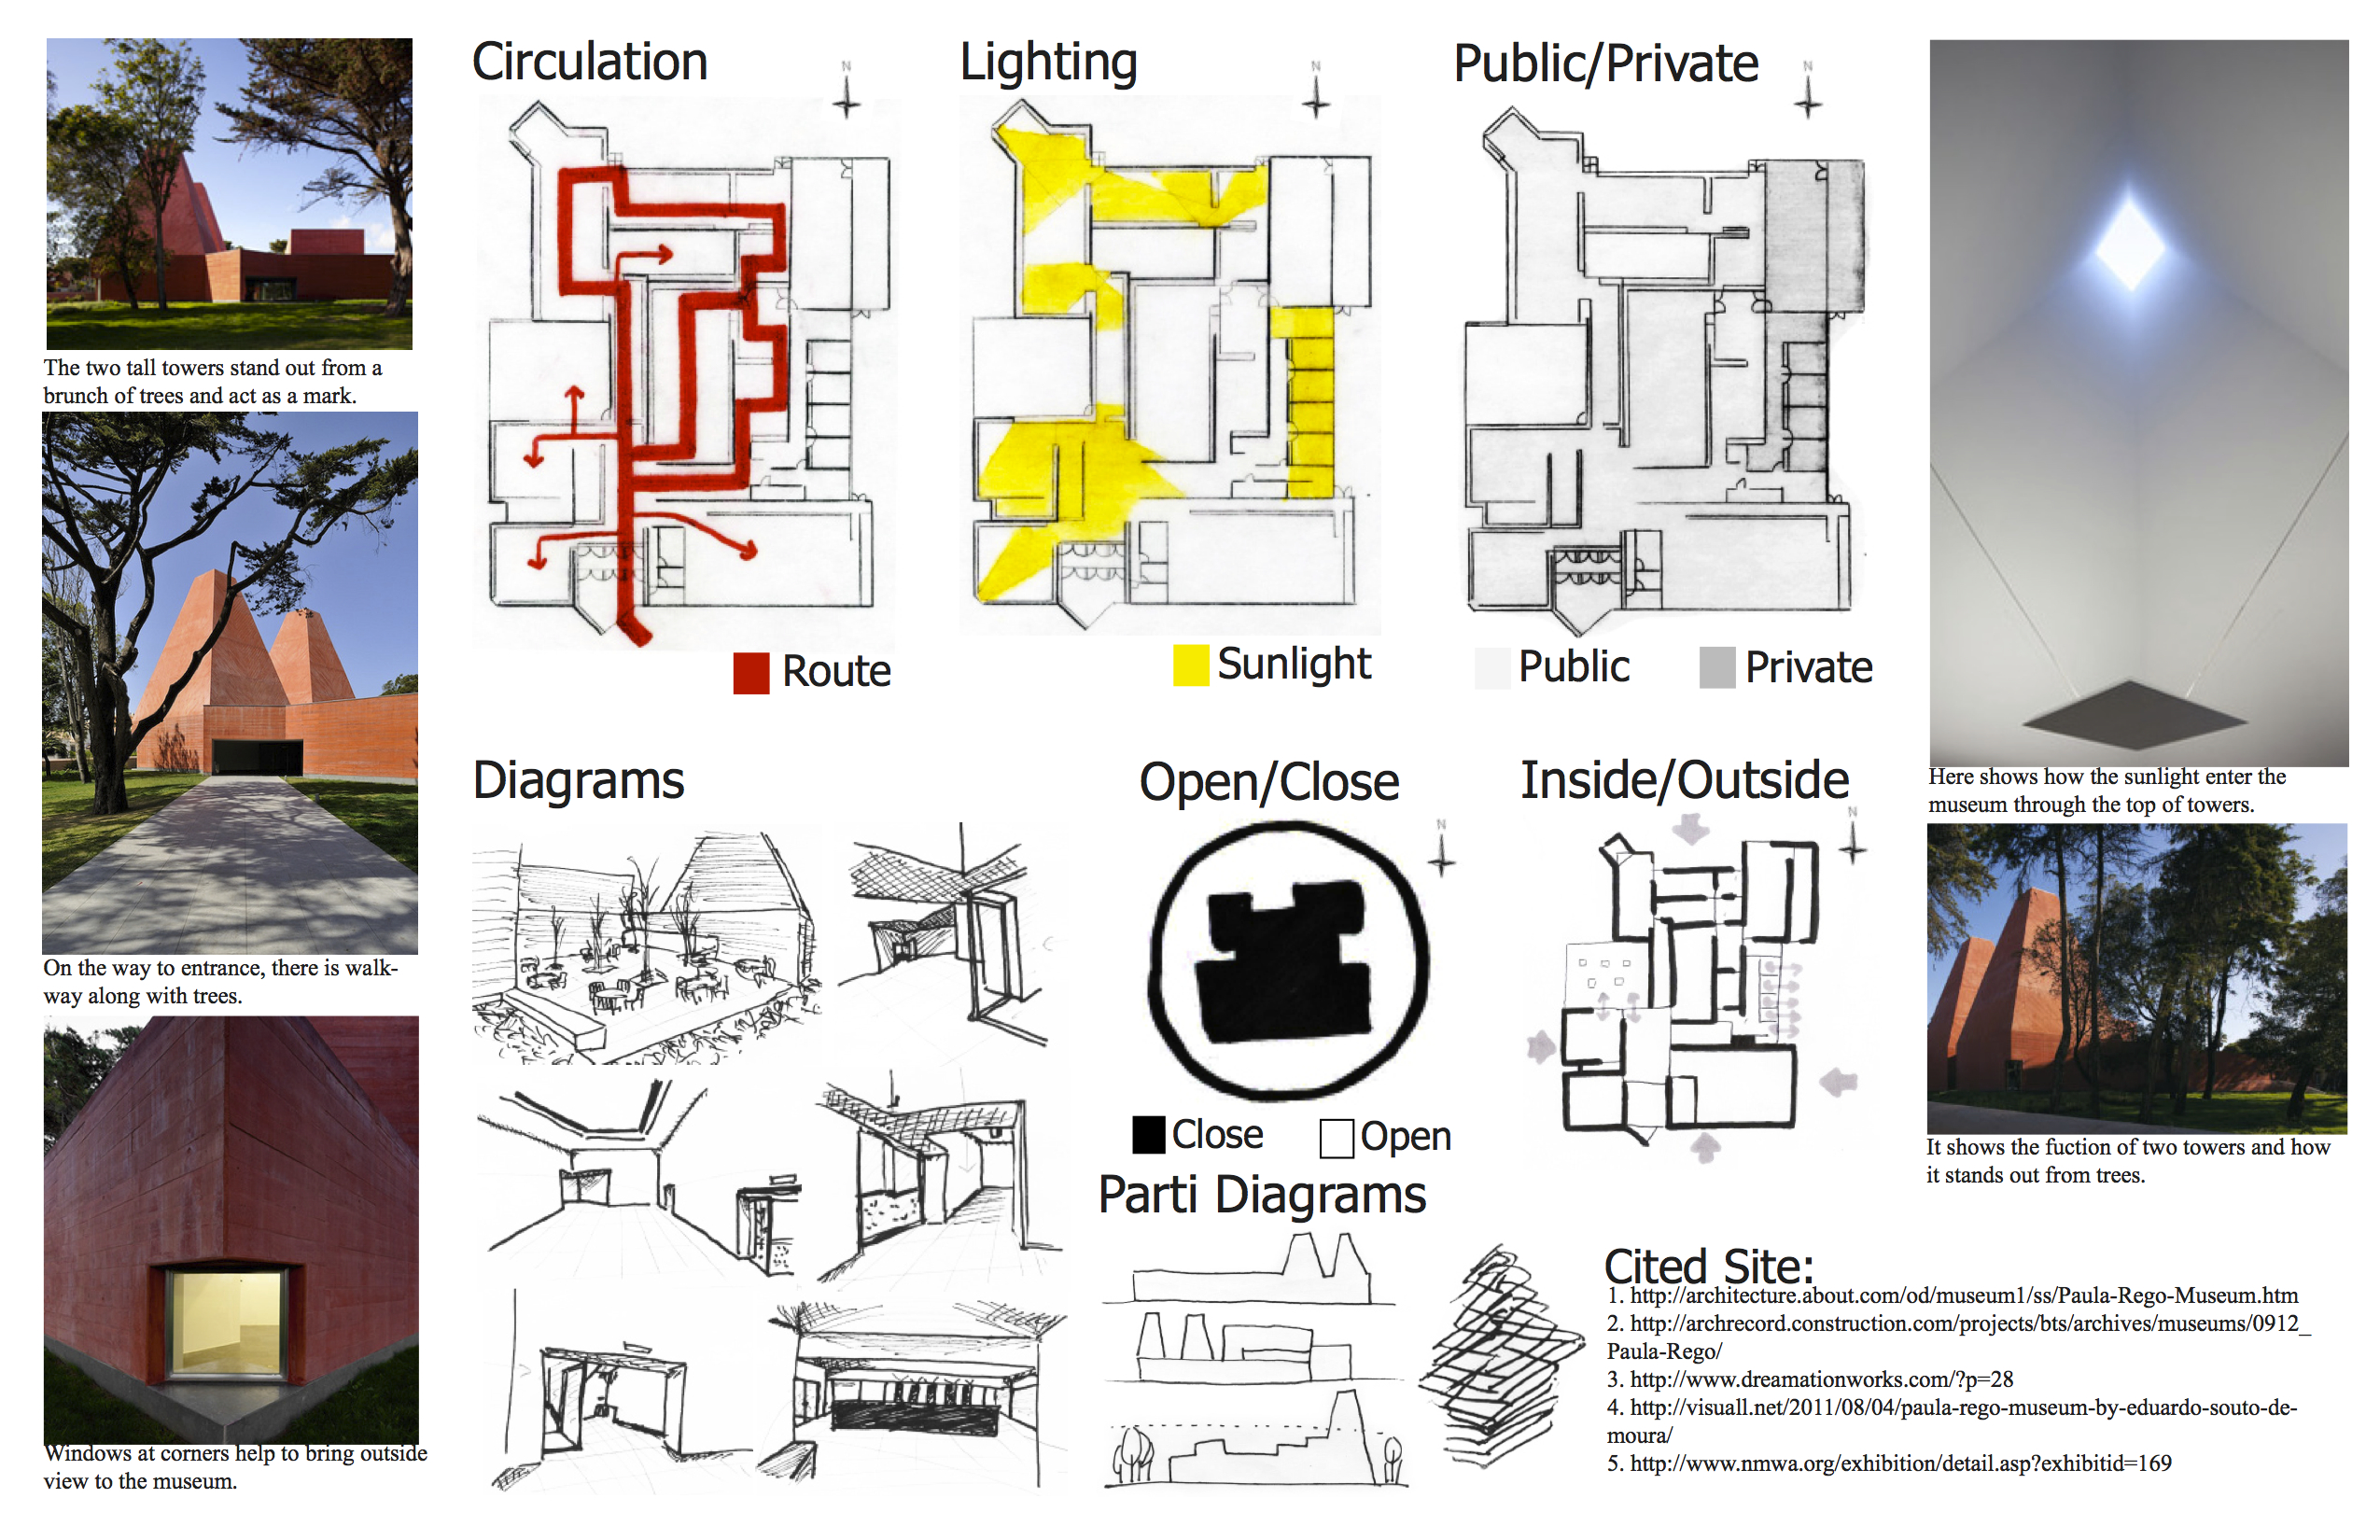 architecture site analysis diagram gas furnace thermostat wiring paula rego museum_souto moura | 220 @ dvc_sp 2012